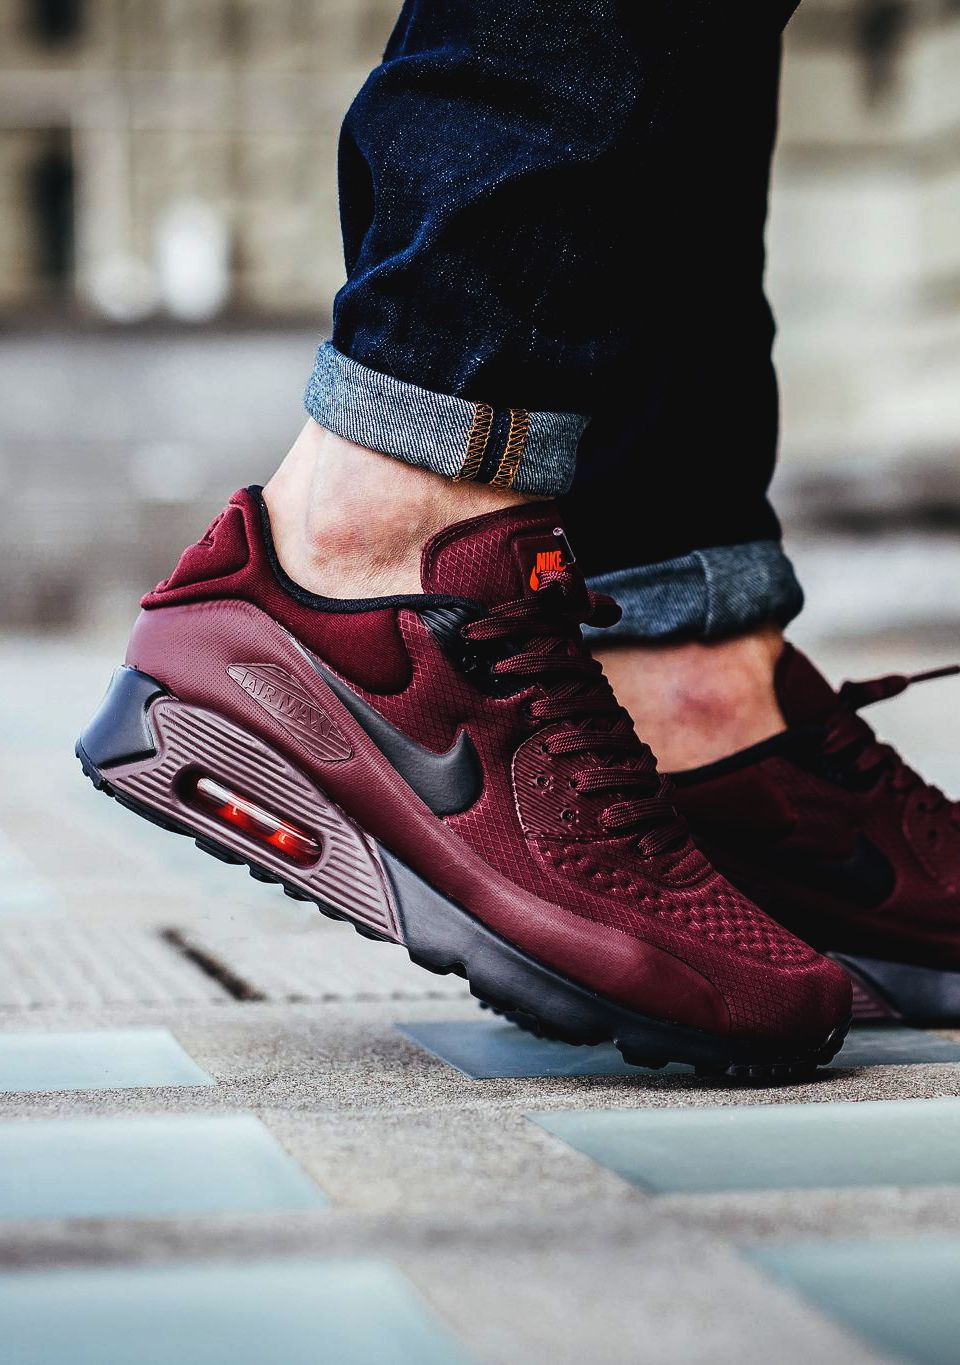 sale retailer 9cb1e 215b0 shoes ,sneaker, sneakers, kicks, sole, nike, air max ,air max 90 ,am90, red  ,swoosh ,fashion ,style ,streetwear ,sporty ,sportswear ,menswear ,men  fashion ...